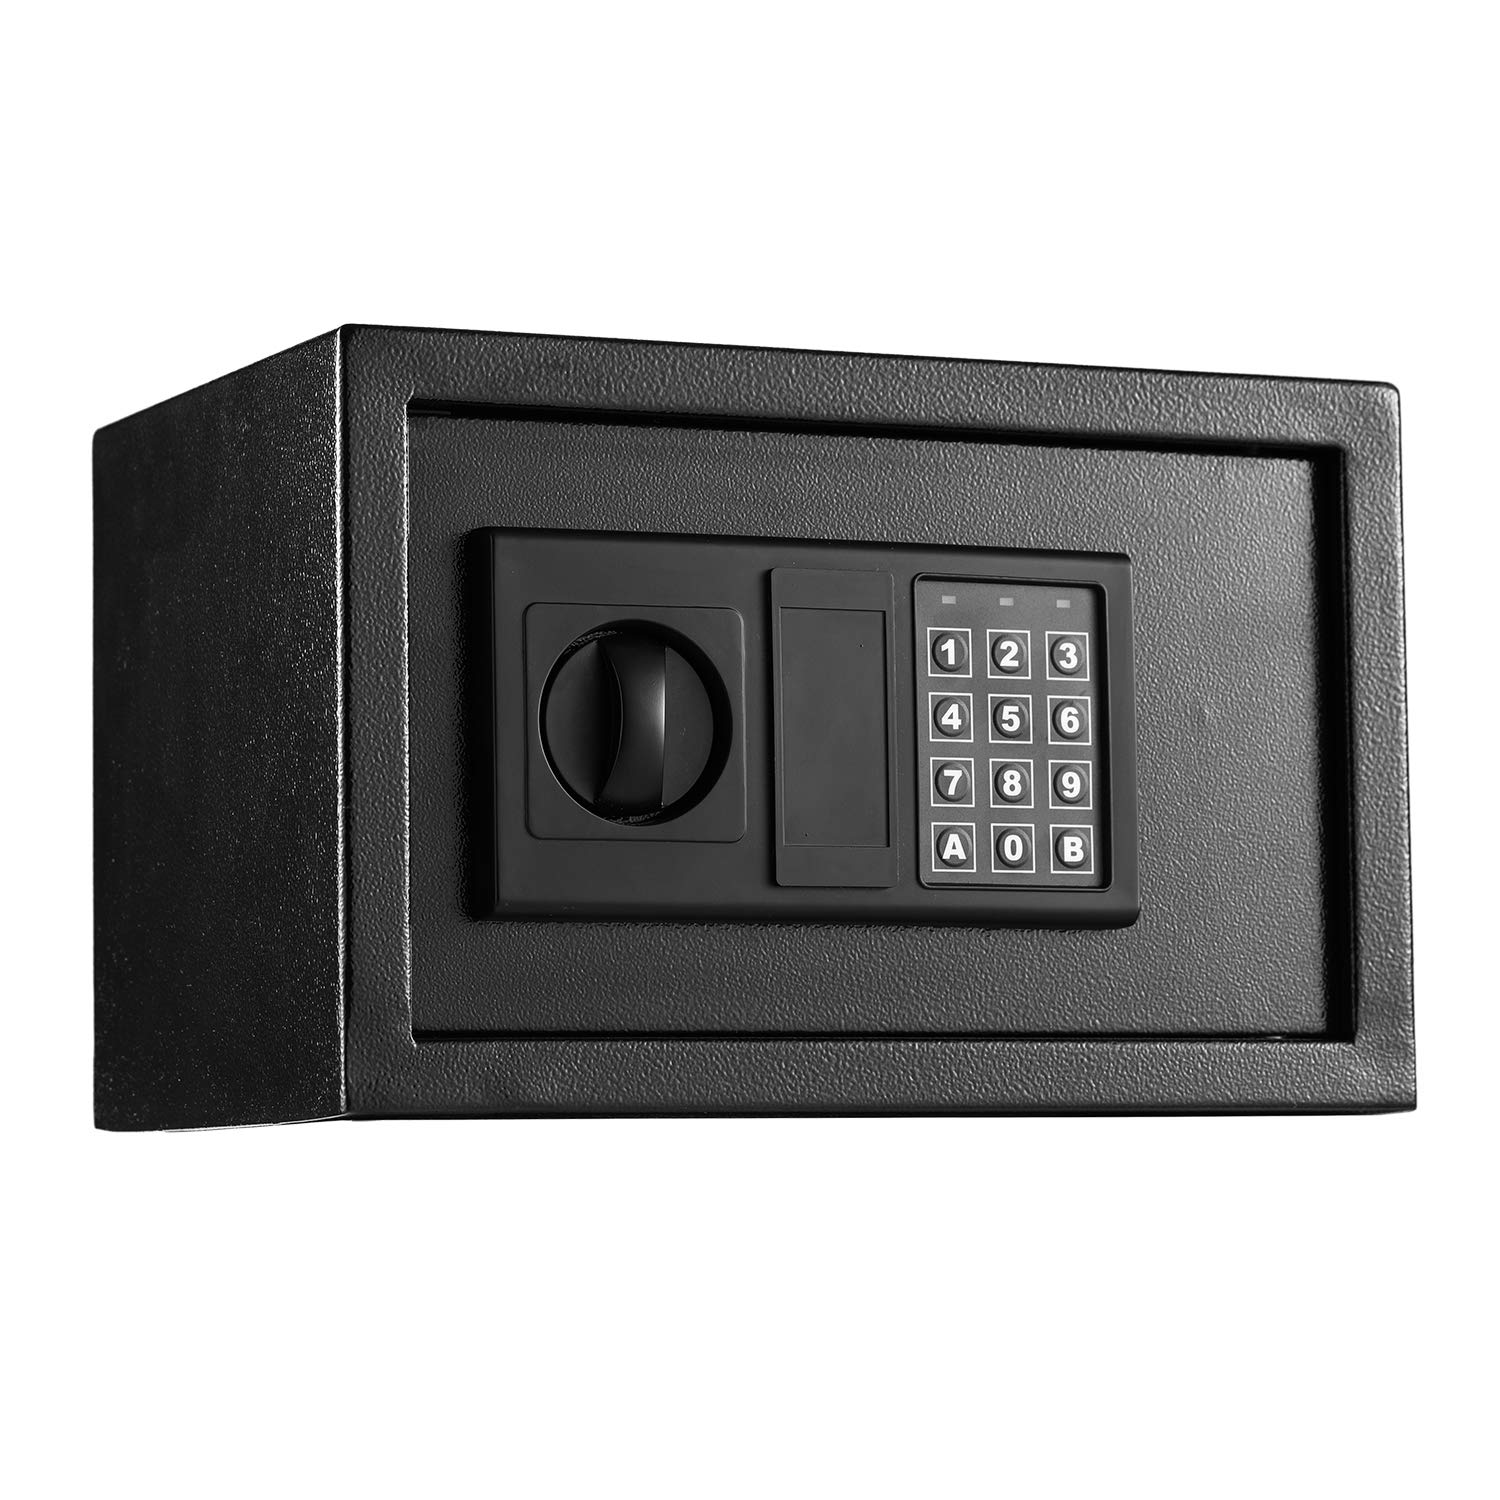 Digital Electronic Security Lock Cabinet Safe Box, Fireproof and Waterproof Solid Steel Wall-Anchoring Design Safe for Wallet Jewelry Cash Storage, Includes 2 Emergency Keys